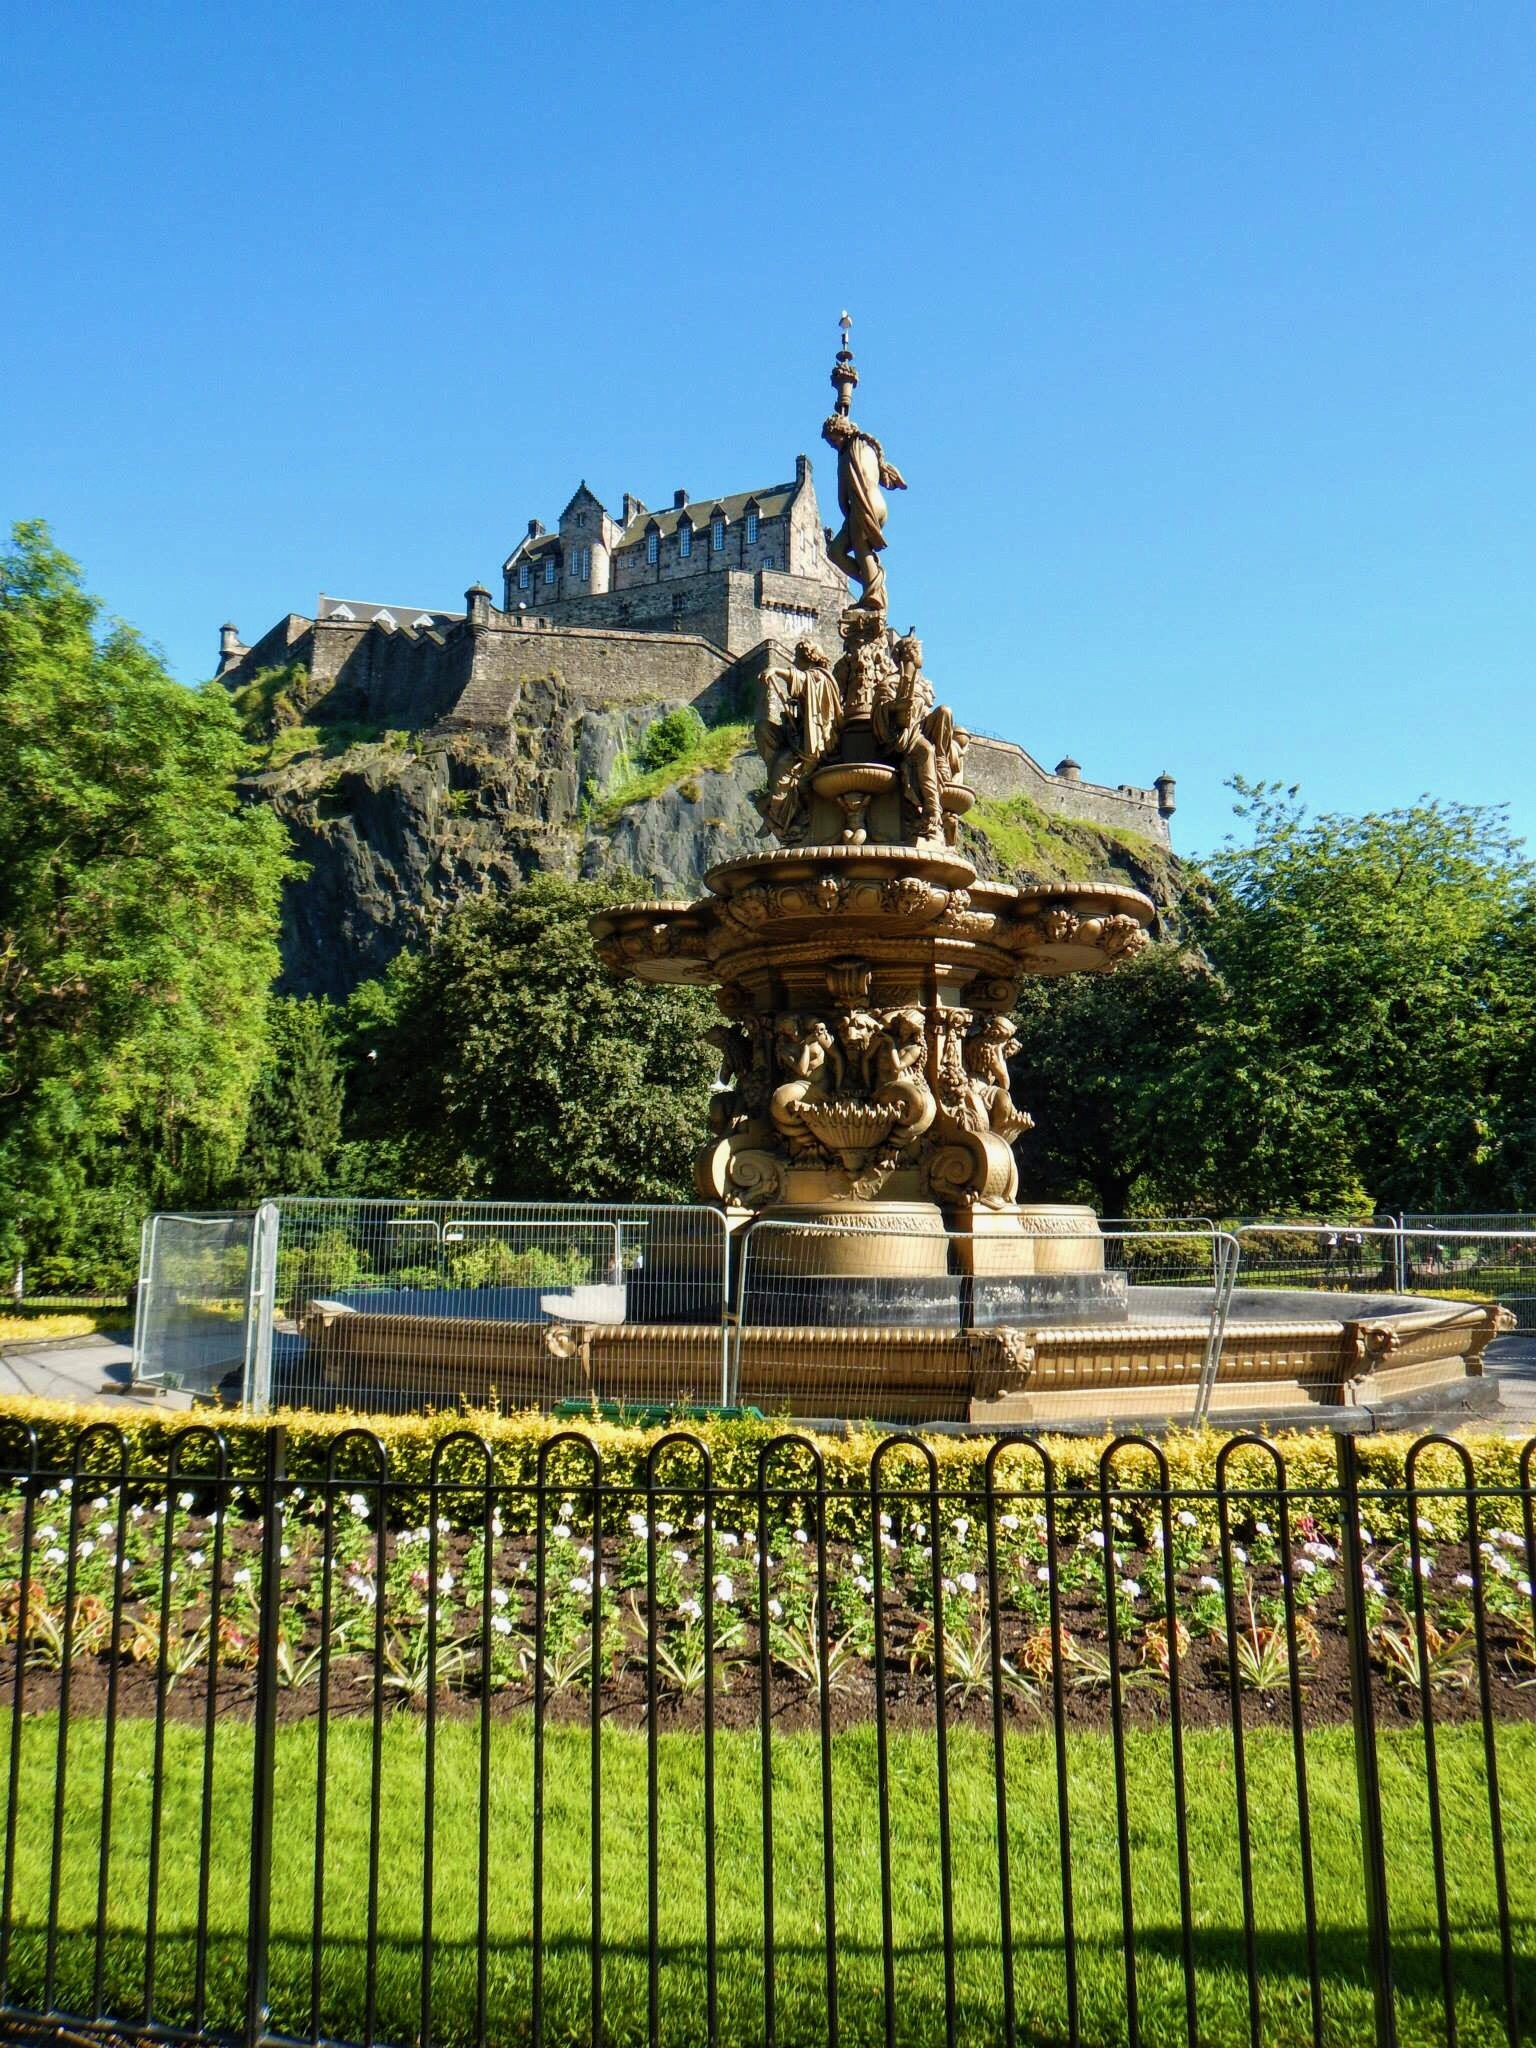 The Ross Fountain (with Edinburgh Castle in the background) was produced by the foundry of Antoine Durenne for the Great London Exposition in 1862 but has called Princes Street Gardens home since 1872. While we were there, more repairs were being done to maintain the integrity of the fountain.